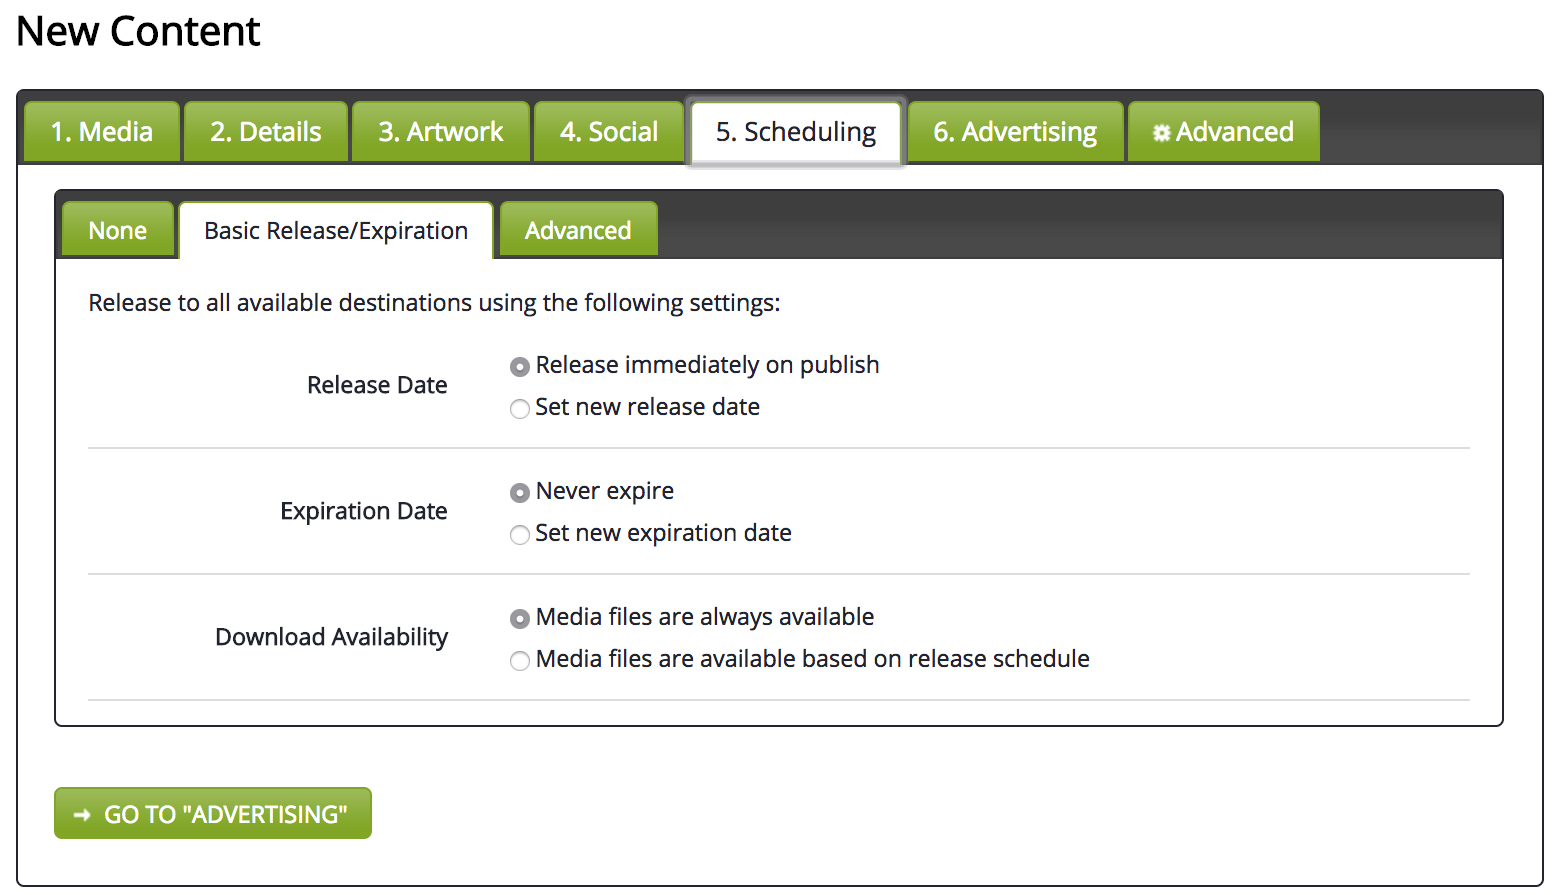 Scheduling Release - Basic